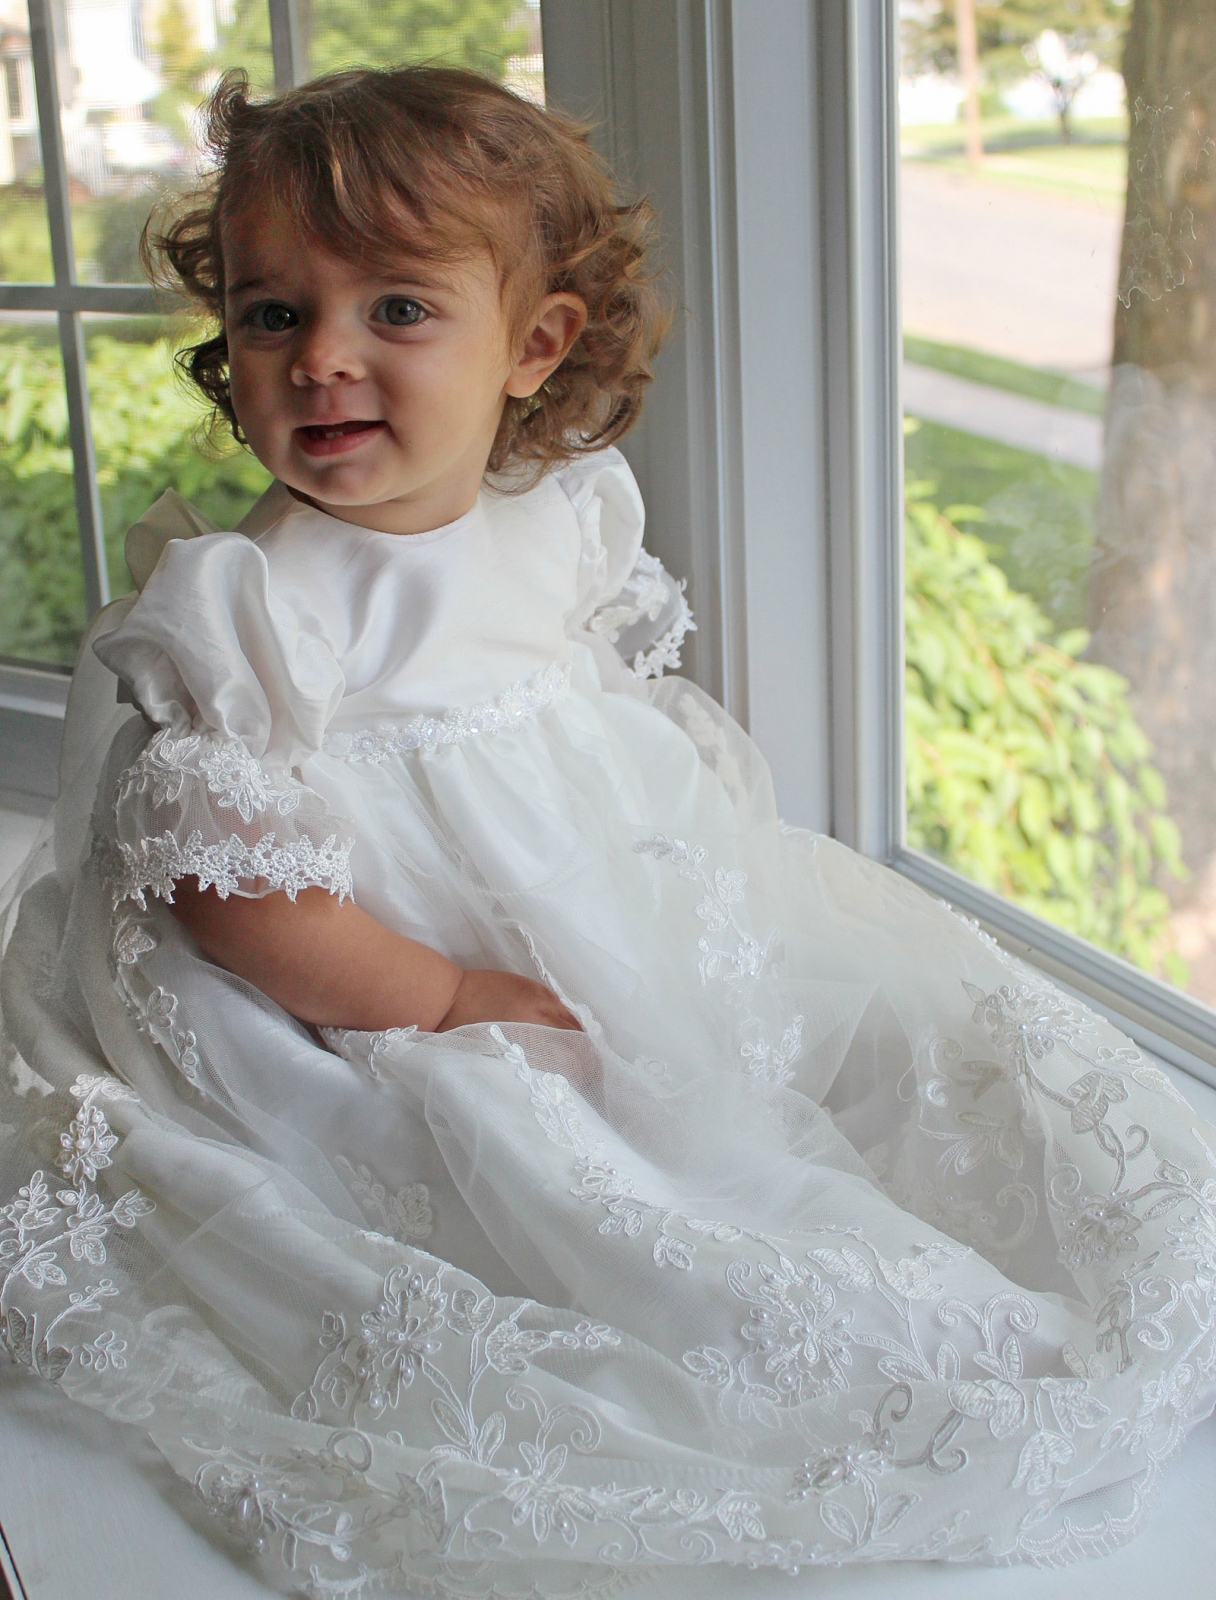 f80b546a846 Macis Design baptismal dresses are couture style dresses each created with  your child in mind. Every Macis infant christening dress is constructed  with the ...